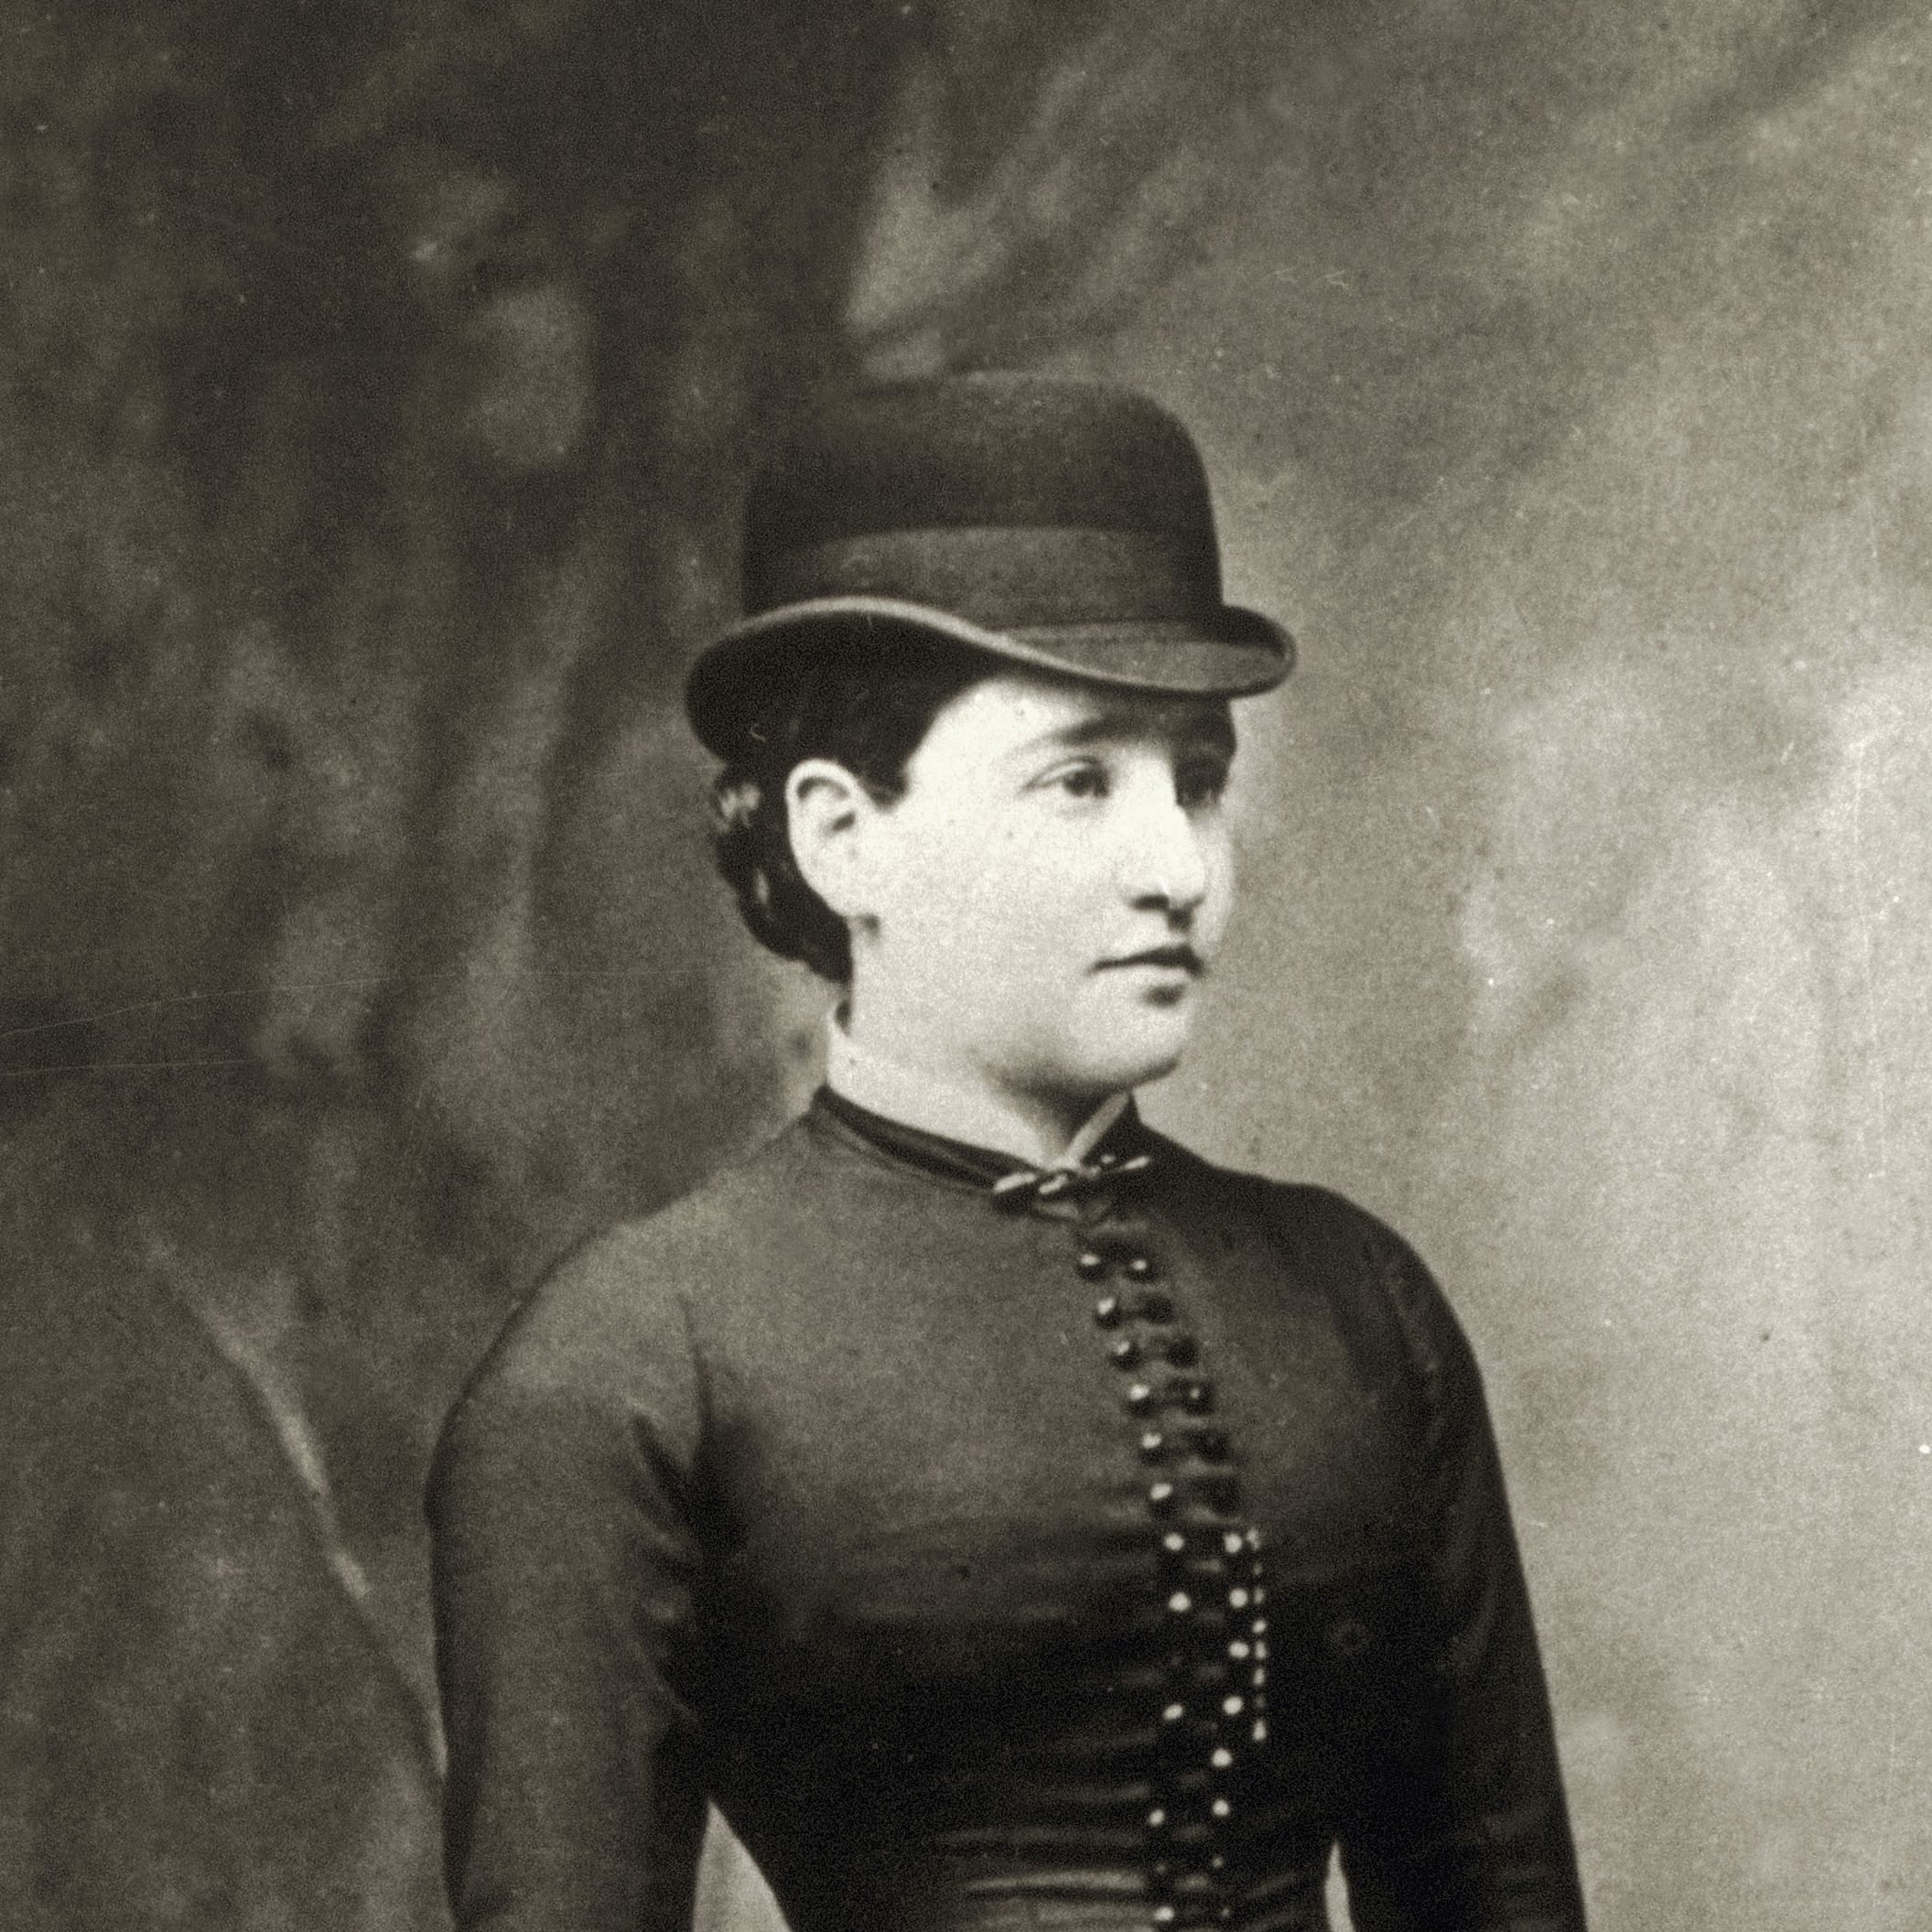 Anna O's Life and Impact on Psychology